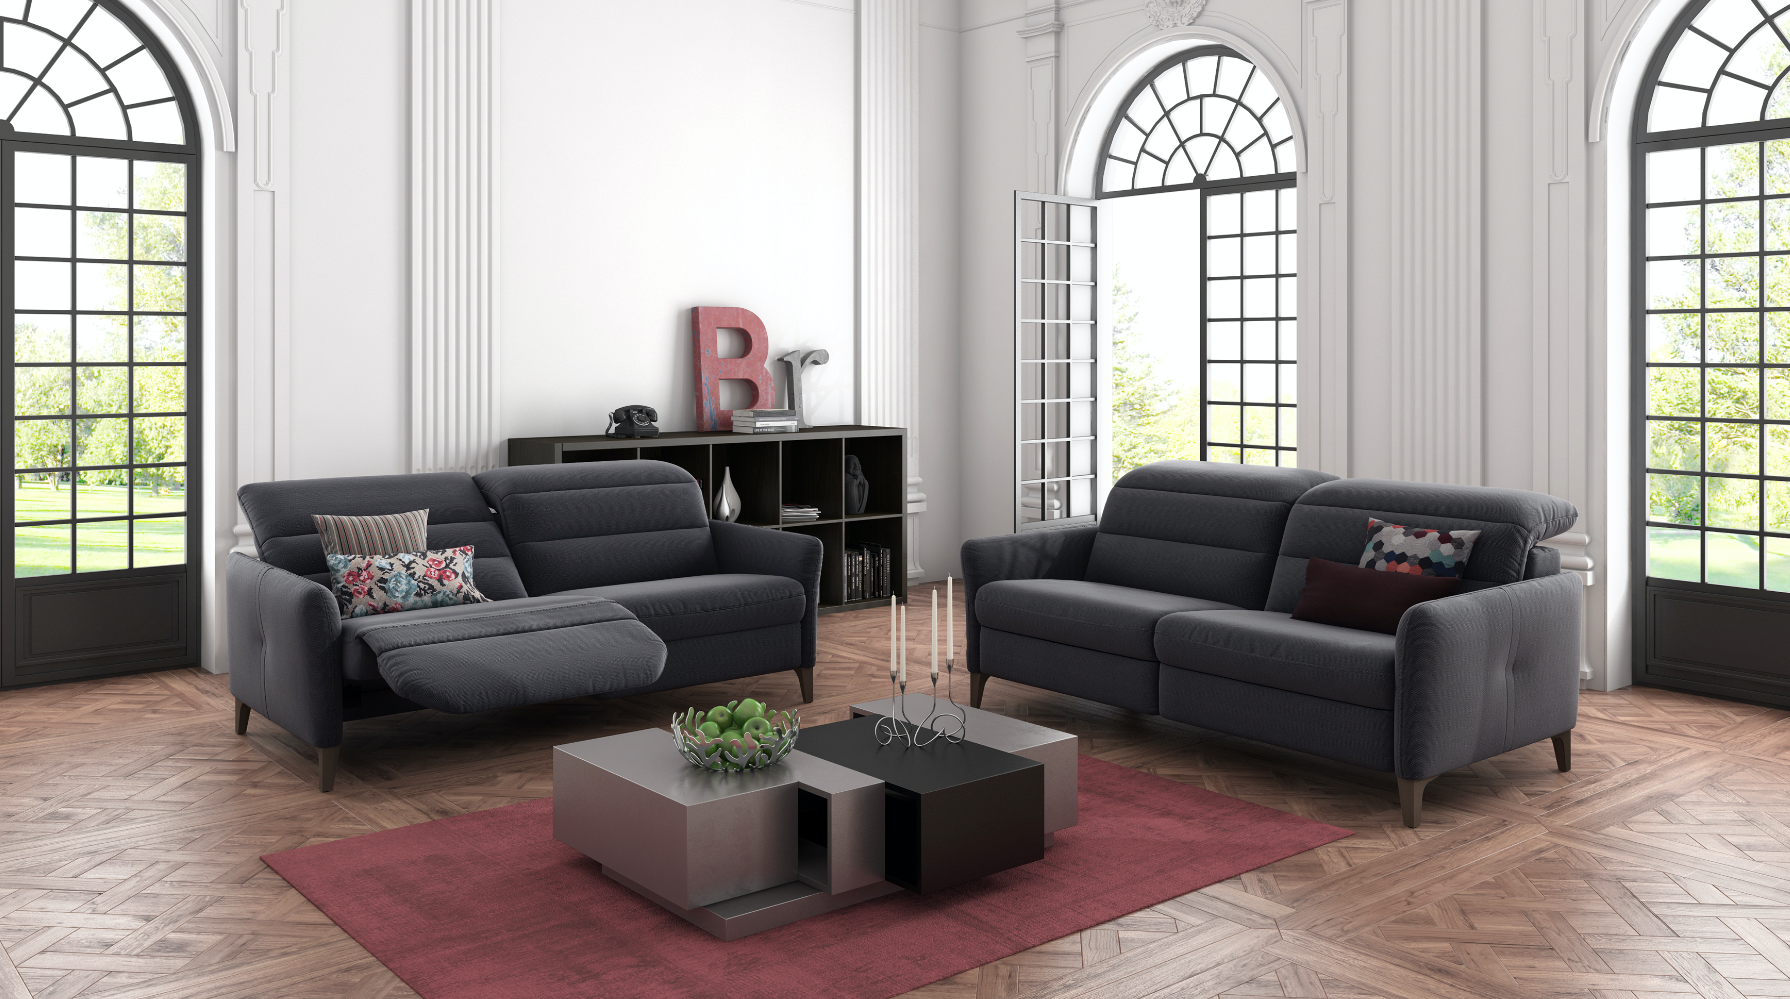 When 2 Made To Measure Sofas Are Better